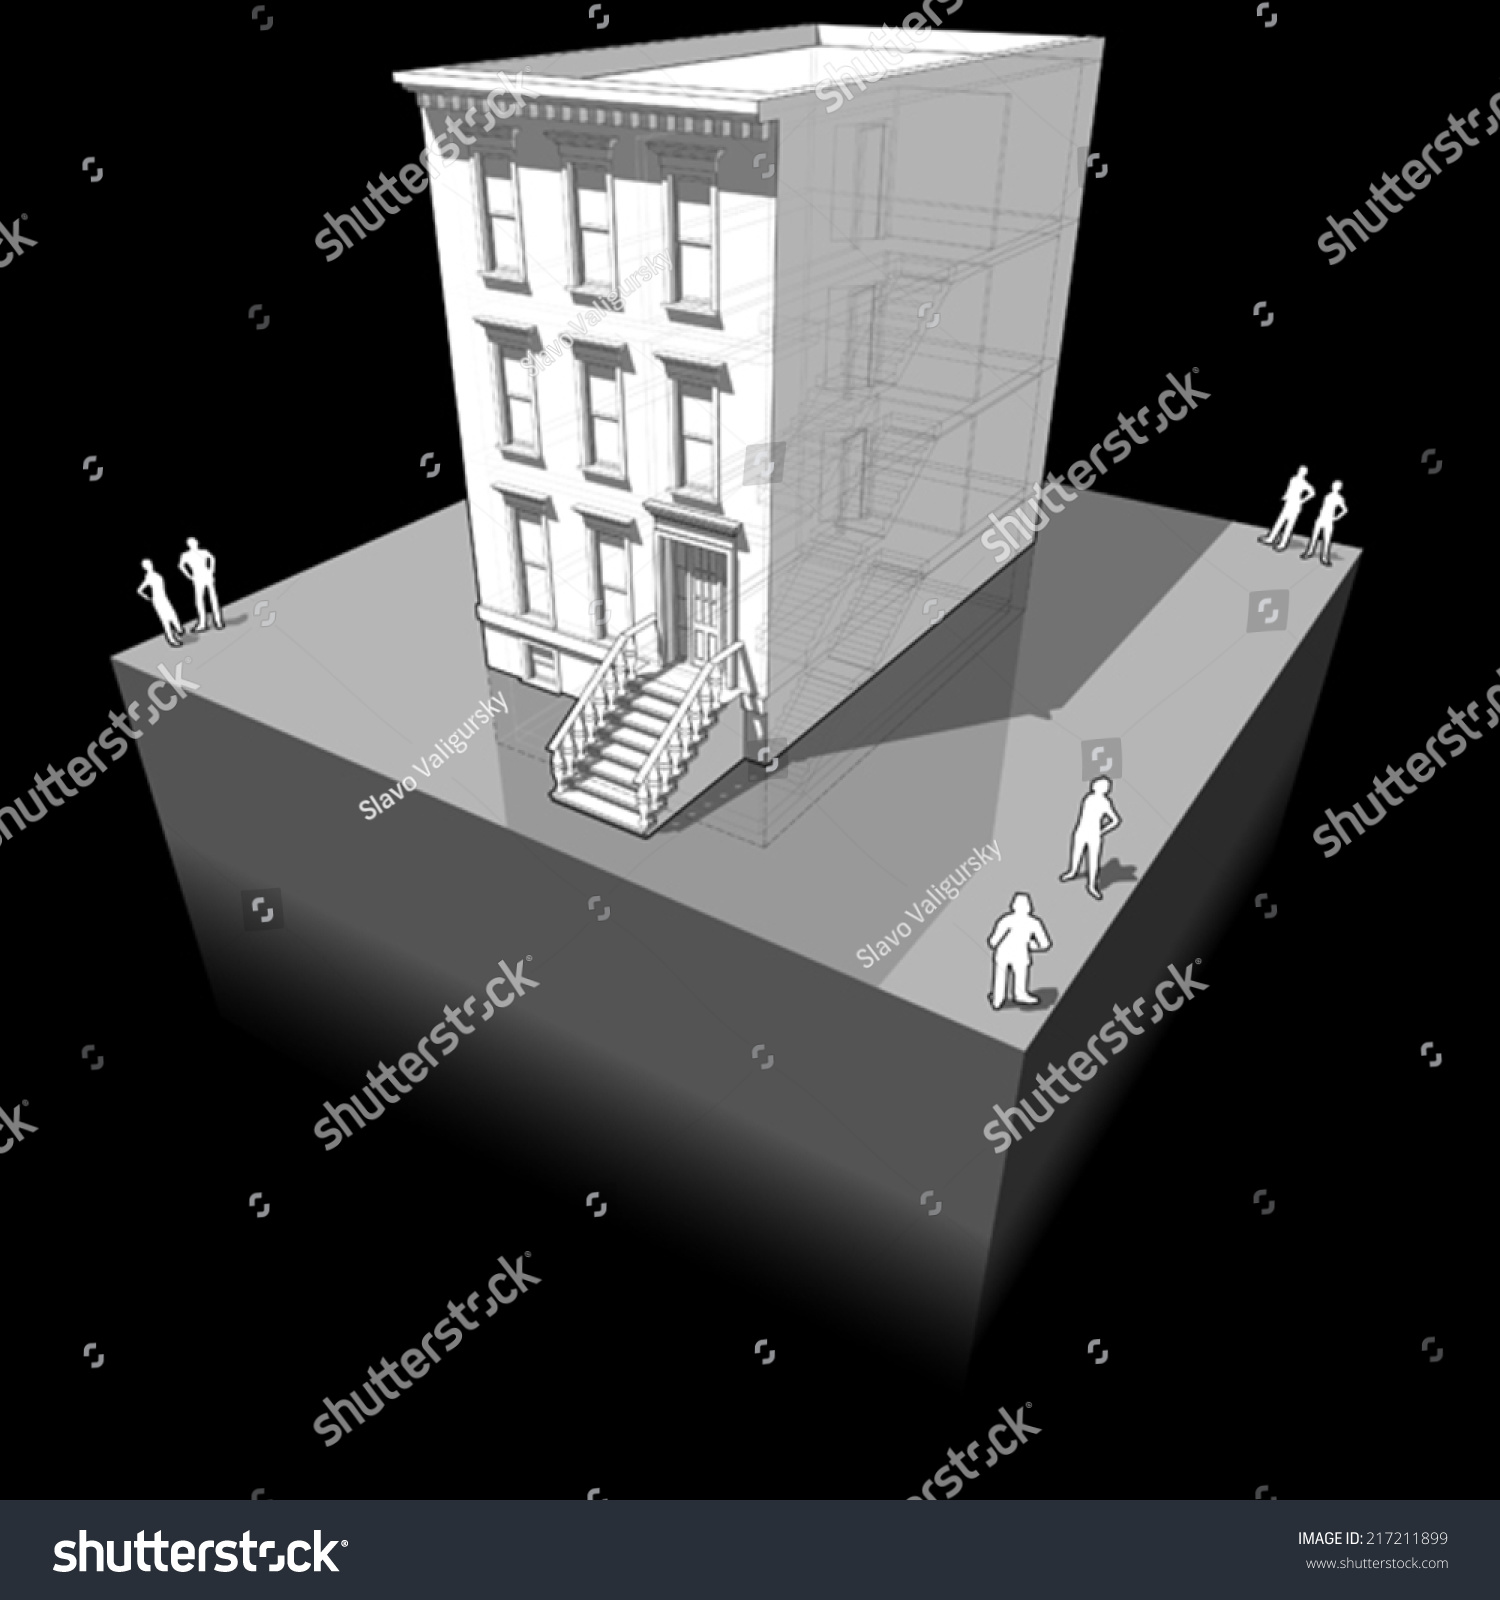 Diagram Typical American Townhouse Known Brownstone Stock Vector ...